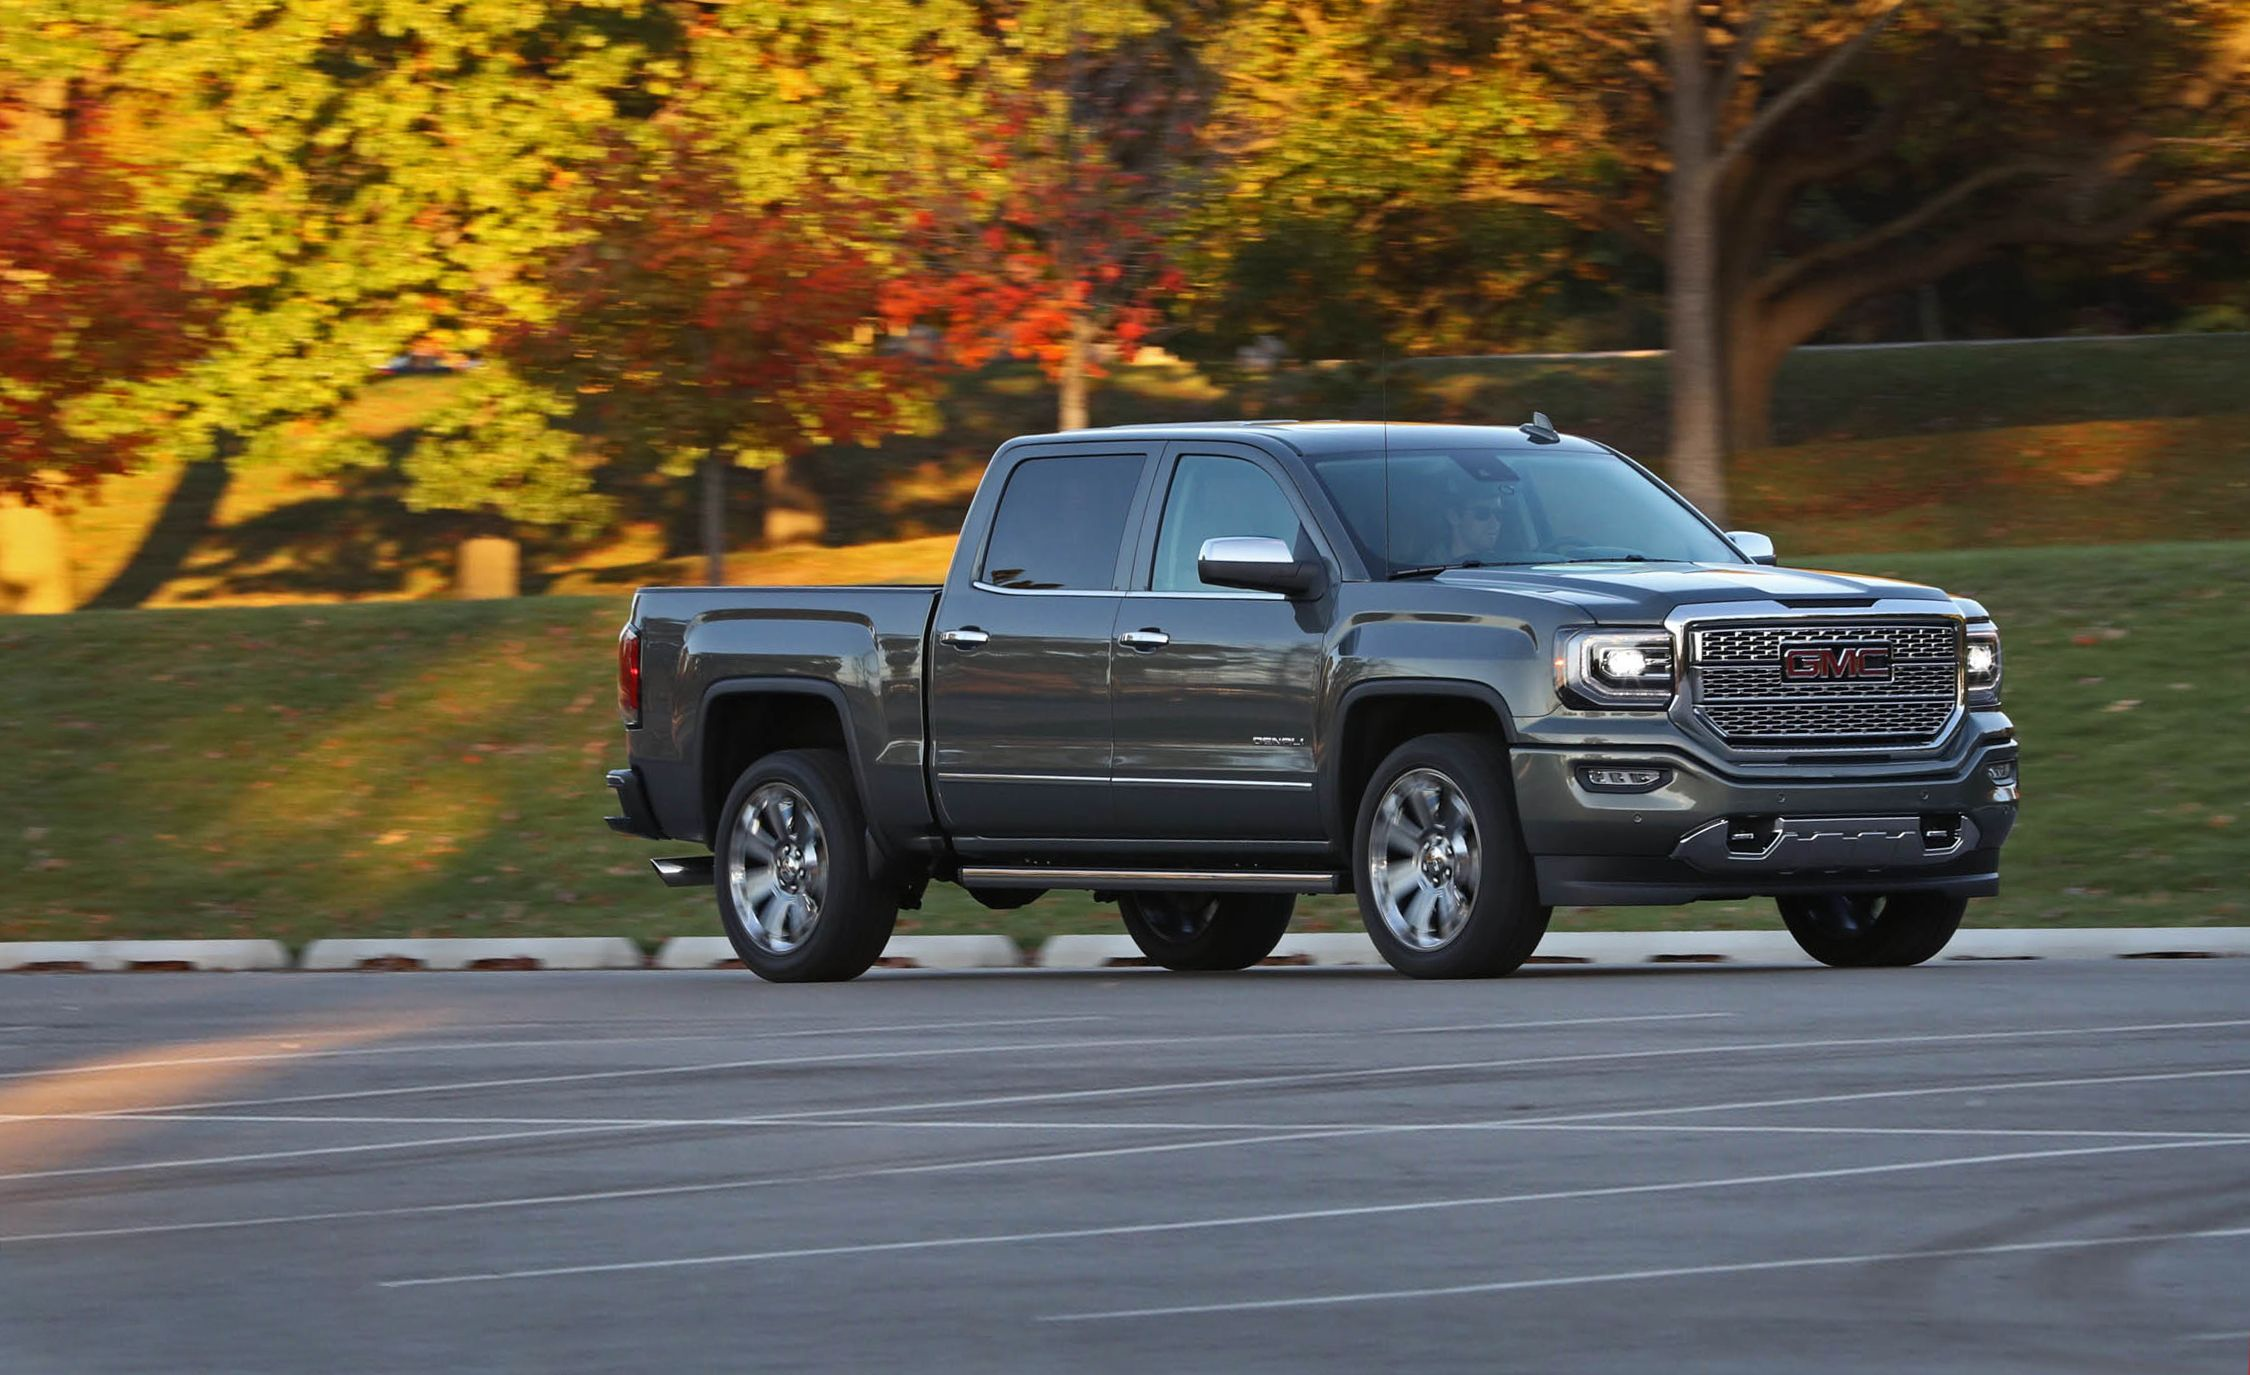 2018 Gmc Sierra 1500 Safety And Driver Istance Review Car